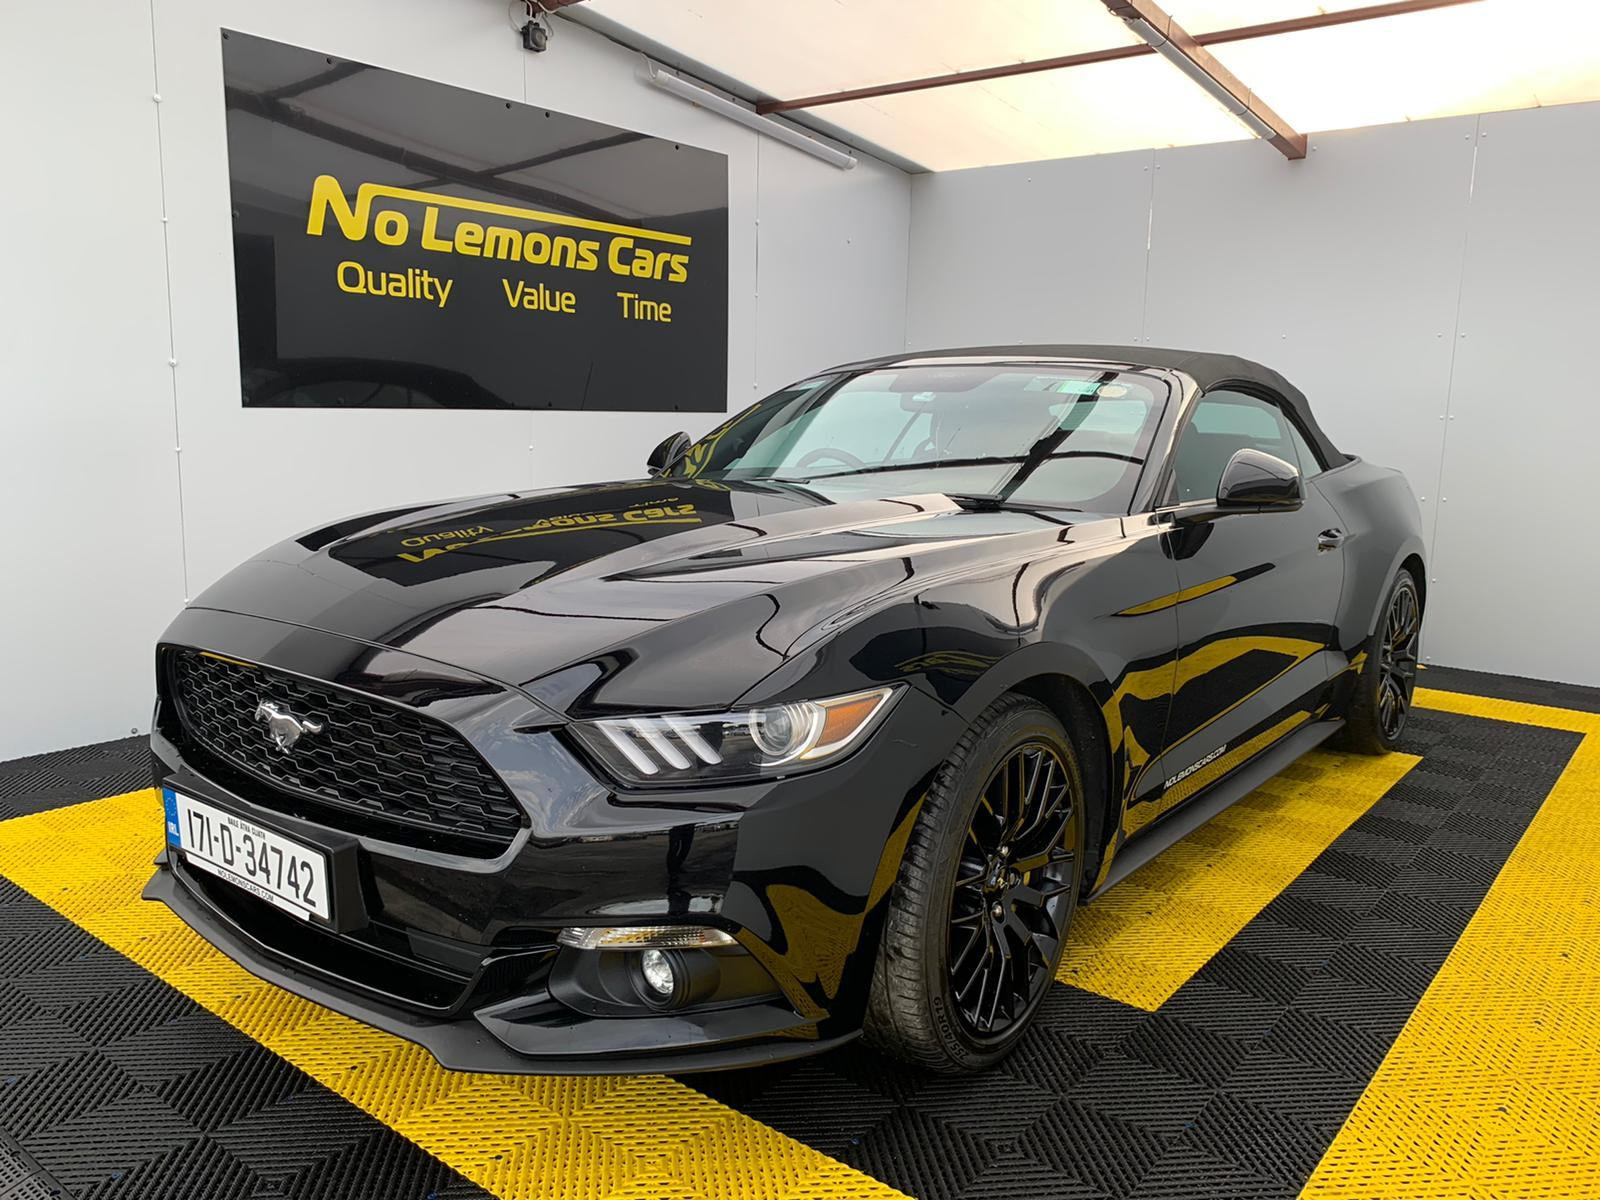 2017 Ford Mustang Premium + package